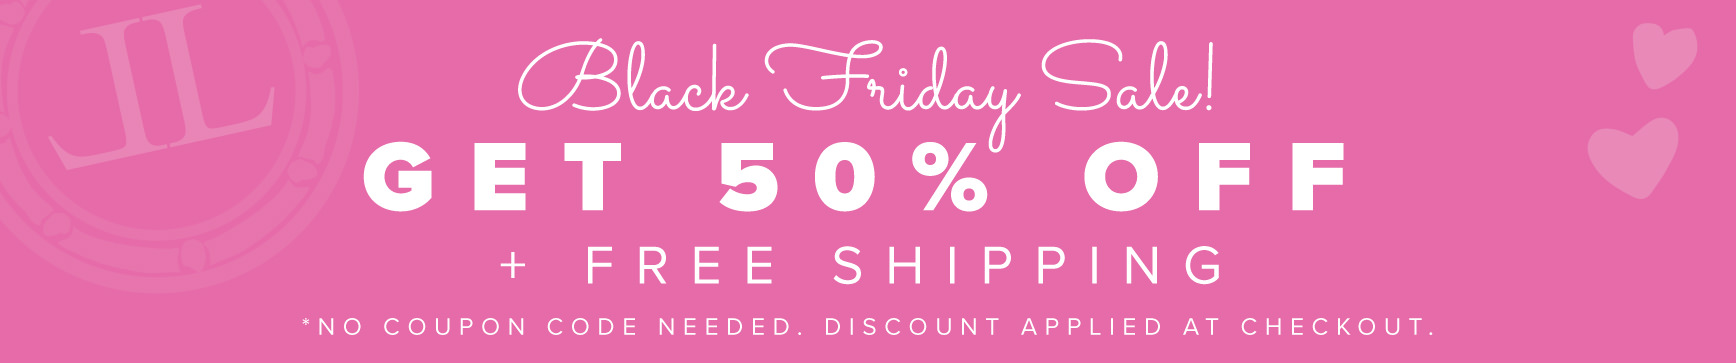 black-friday-banner-50-new.jpg